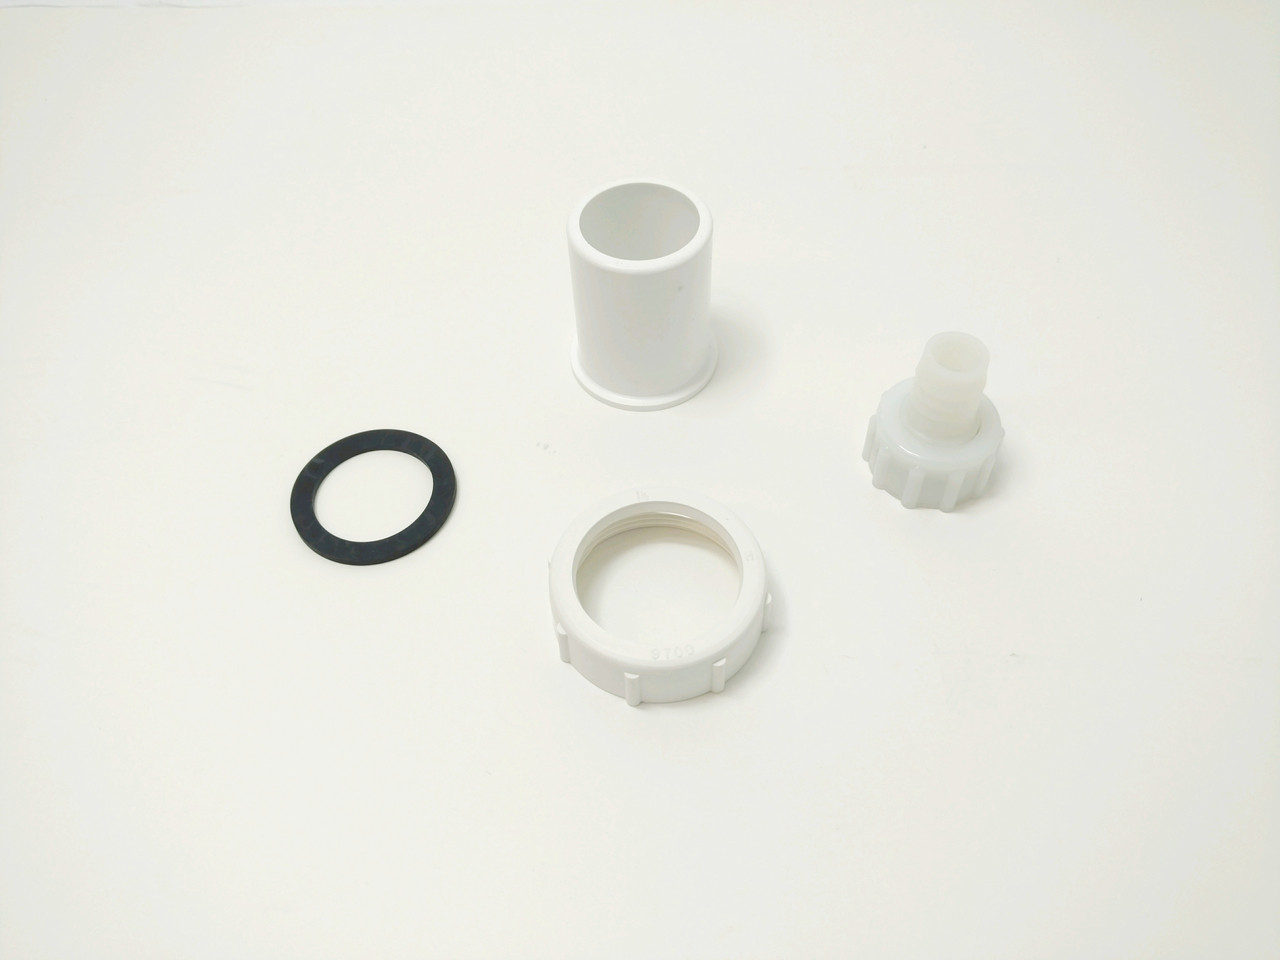 KIT, PUMP-OUT/VENT ADAPTERS 310235